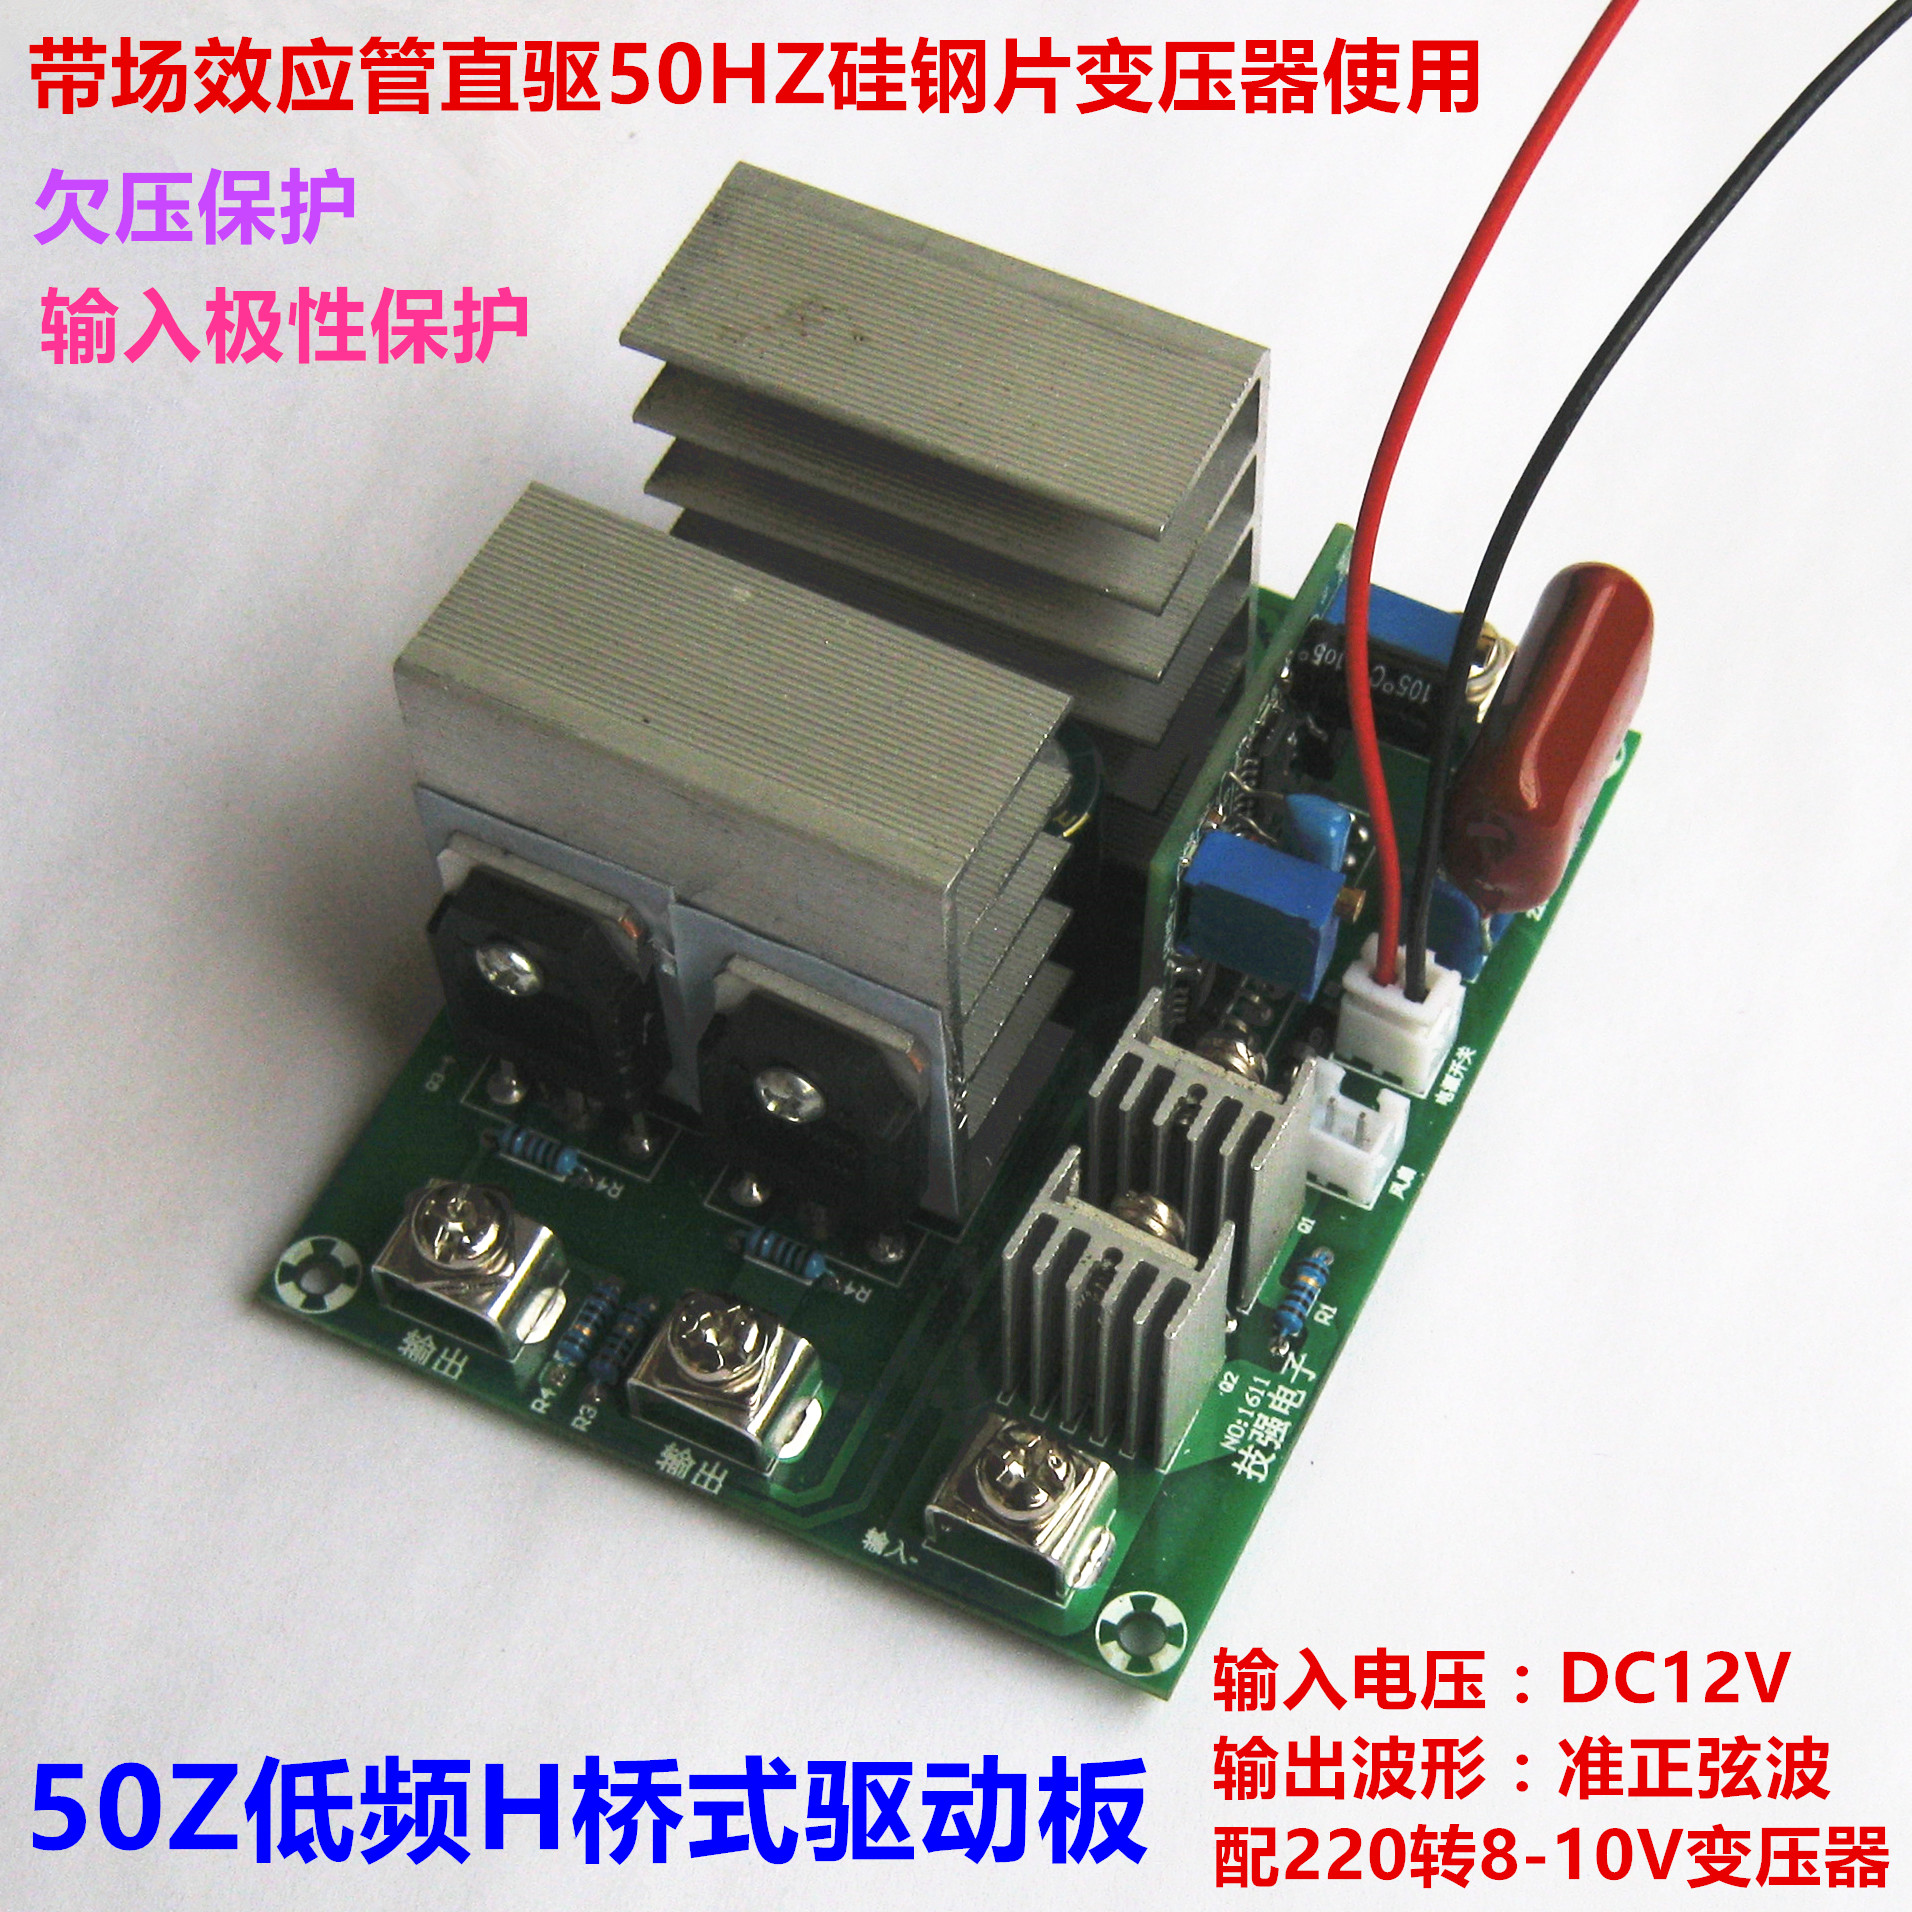 12V Boost 220V Bridge Type 50HZ Inverter Driver Board 500W with Voltage Regulation Quasi Sinusoidal Direct Transformer энергетические добавки geneticlab isotonic boost тропик 500 гр